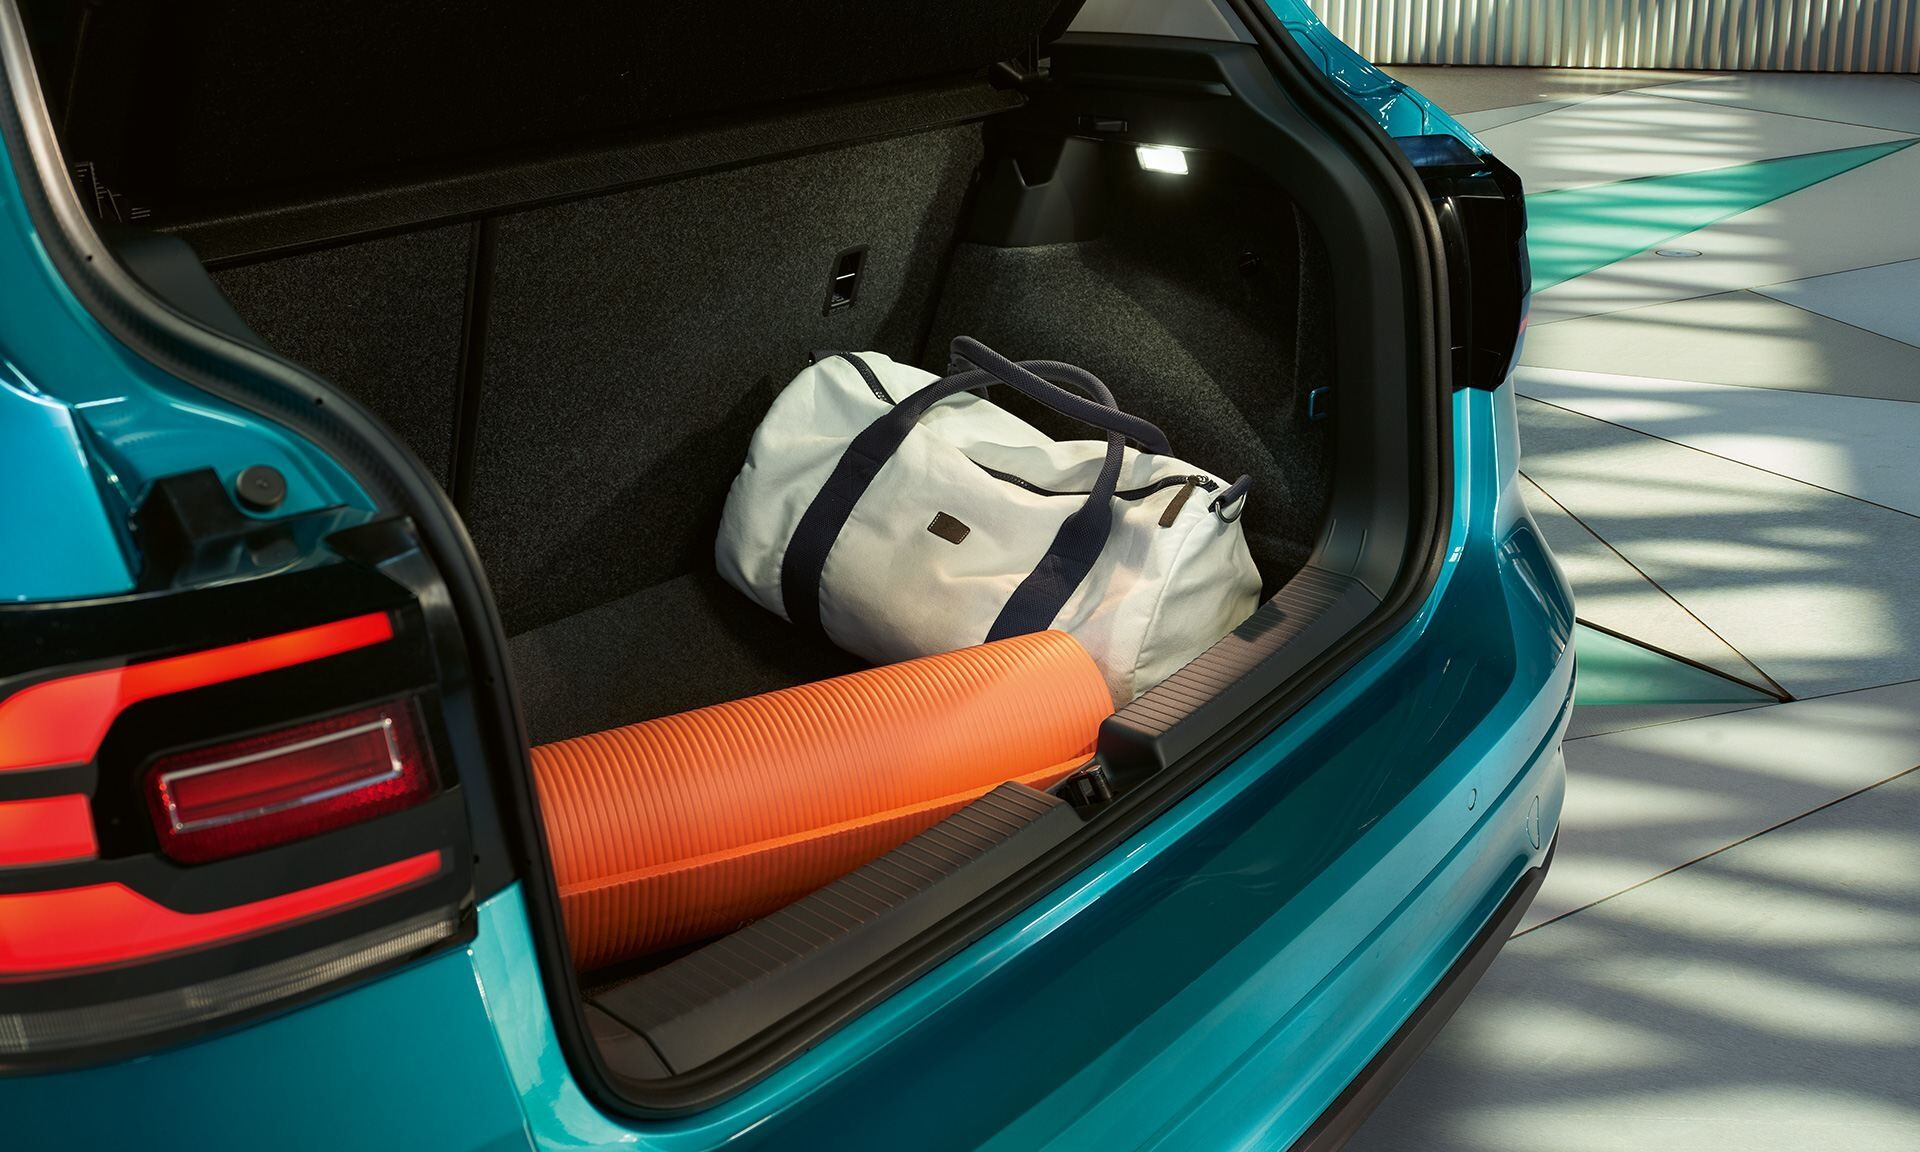 vw t cross open rear luggage compartment with sport luggage